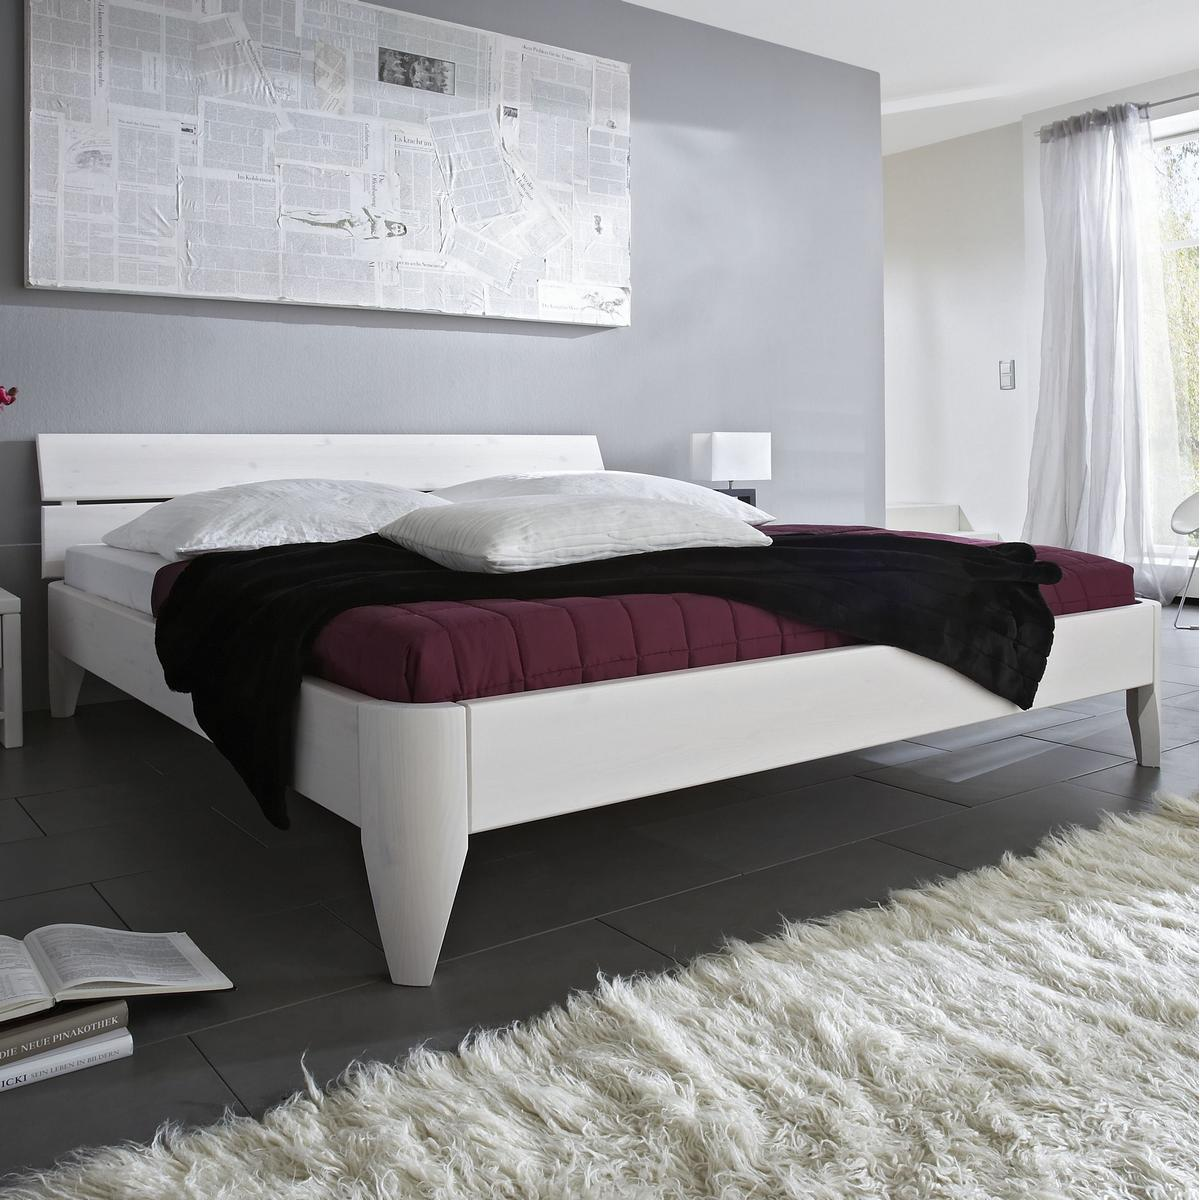 massivholz bett 120x200 easy sleep kiefer massiv wei lackiert 9212 72 0. Black Bedroom Furniture Sets. Home Design Ideas